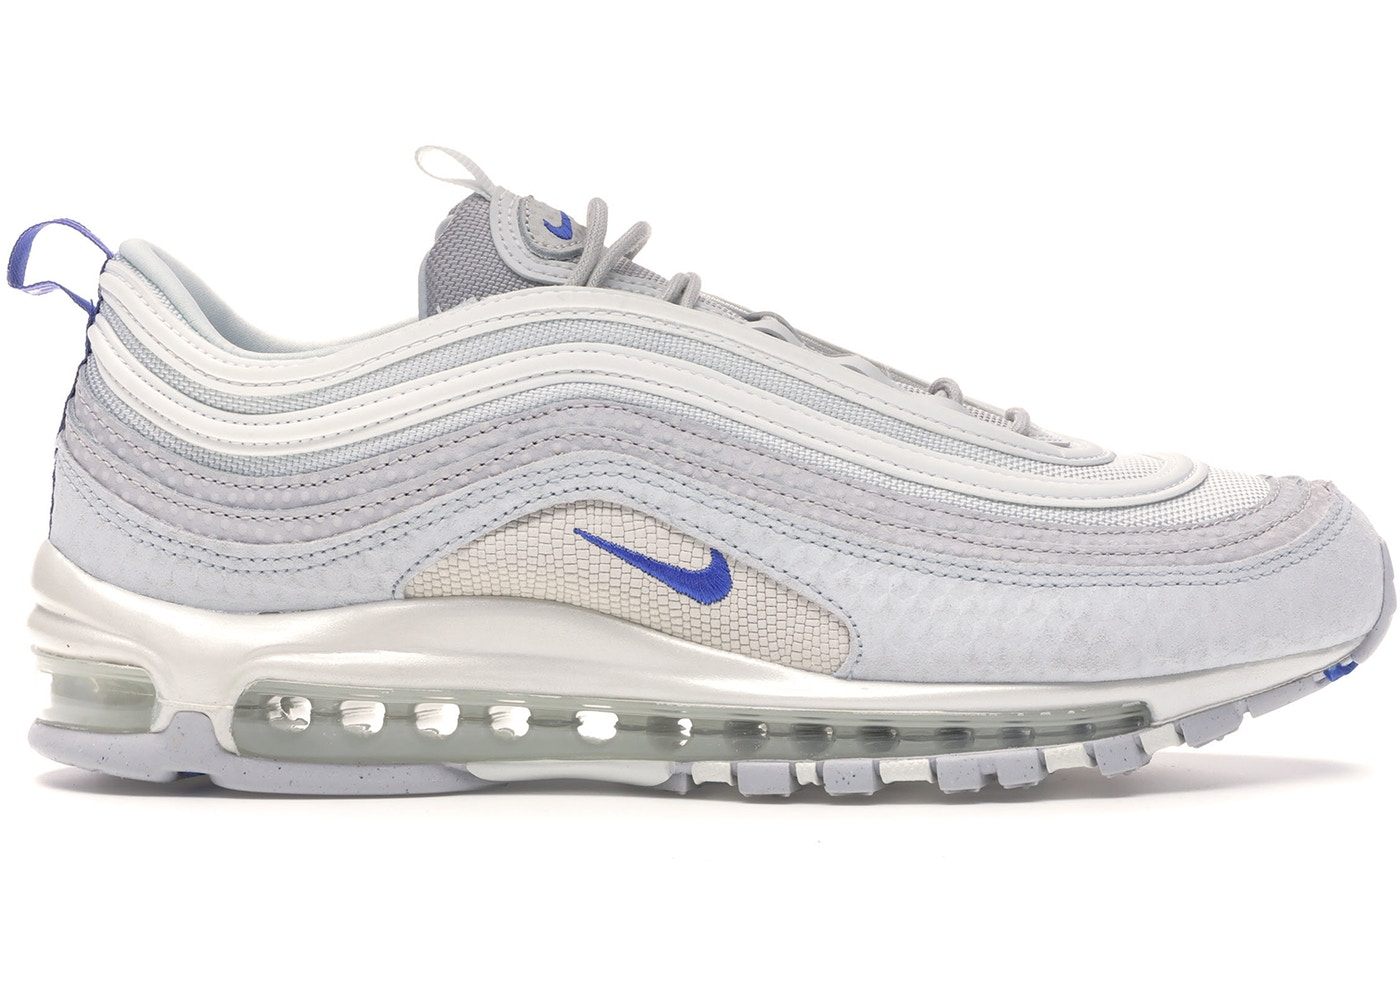 Nike Air Max 97 Pure Platinum Racer Blue 312834 009